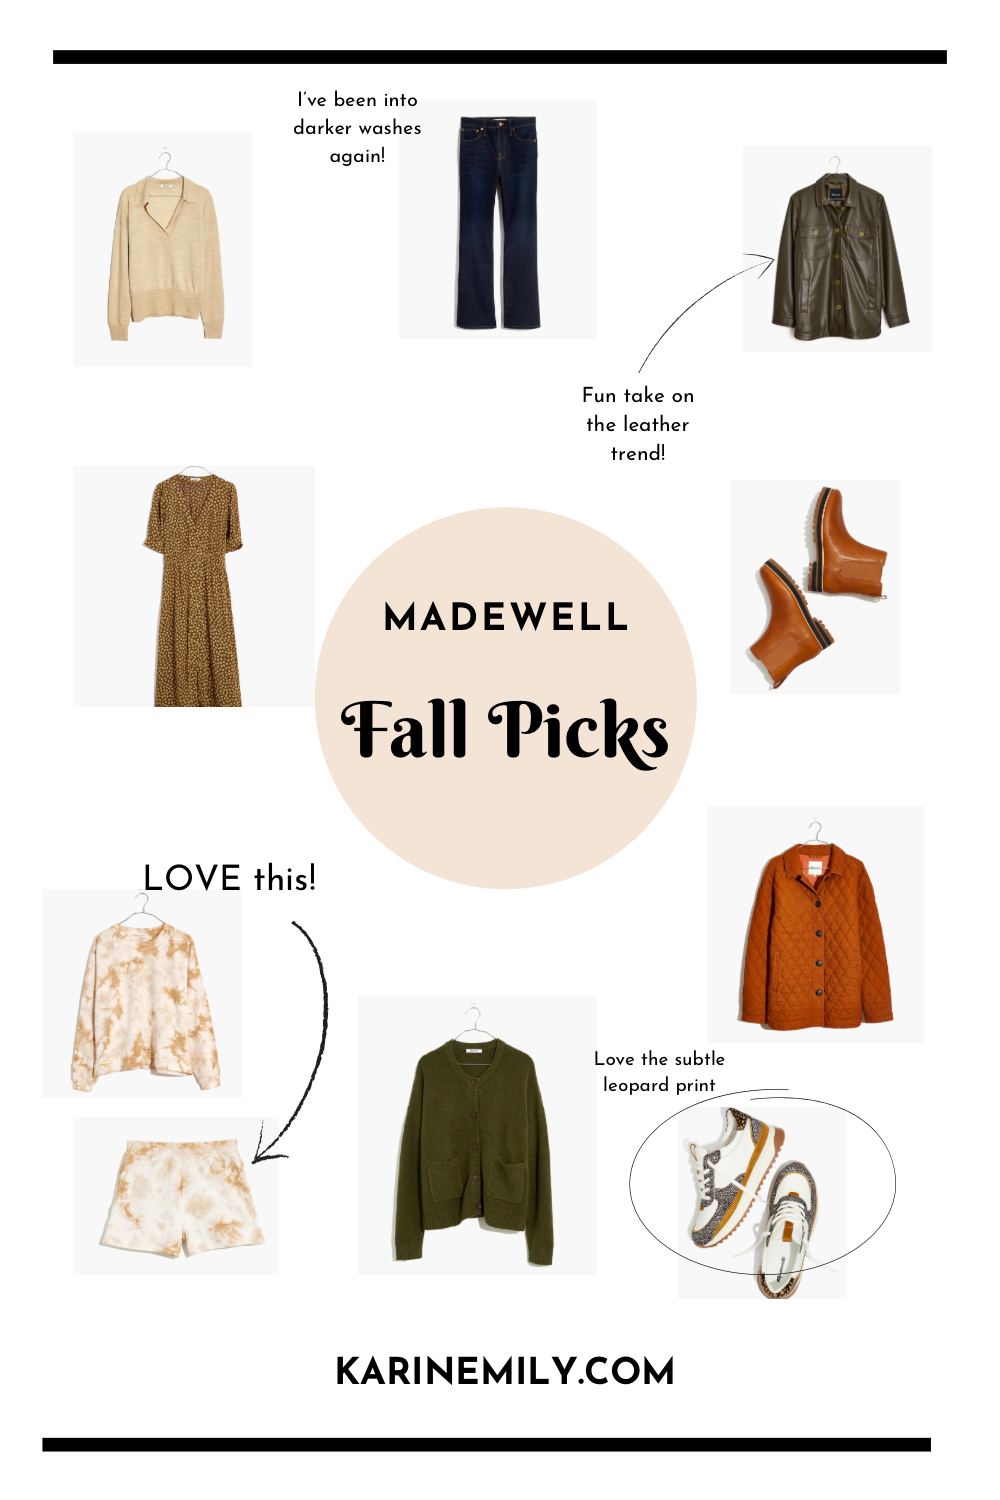 Madewell Fall Style Picks 2020 – My Favorites for Fall